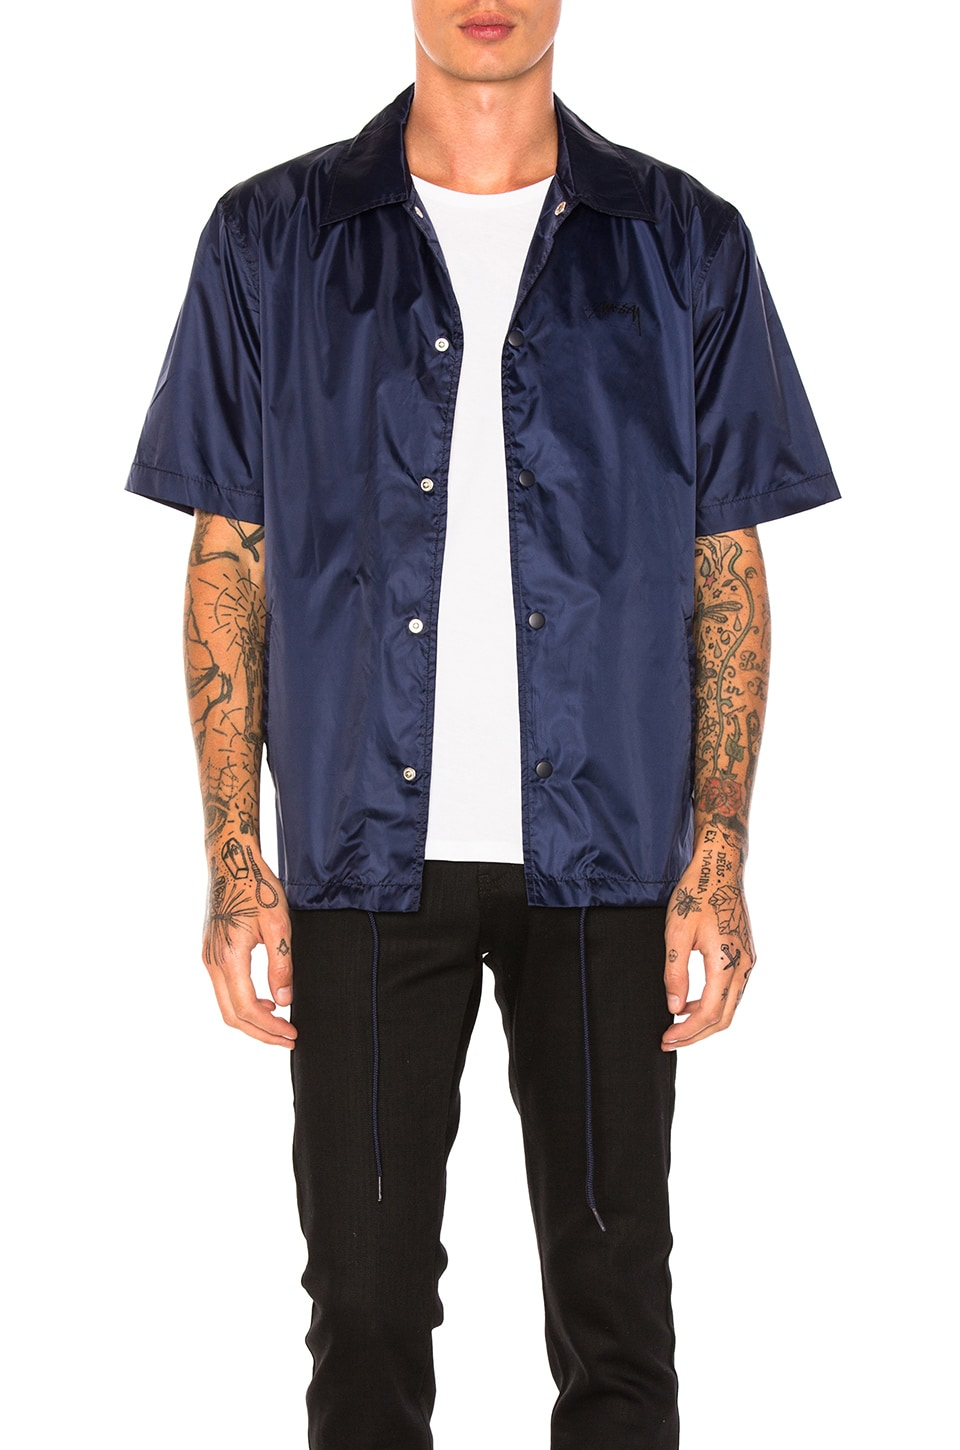 Photo of S/SL Coach Jacket by Stussy men clothes